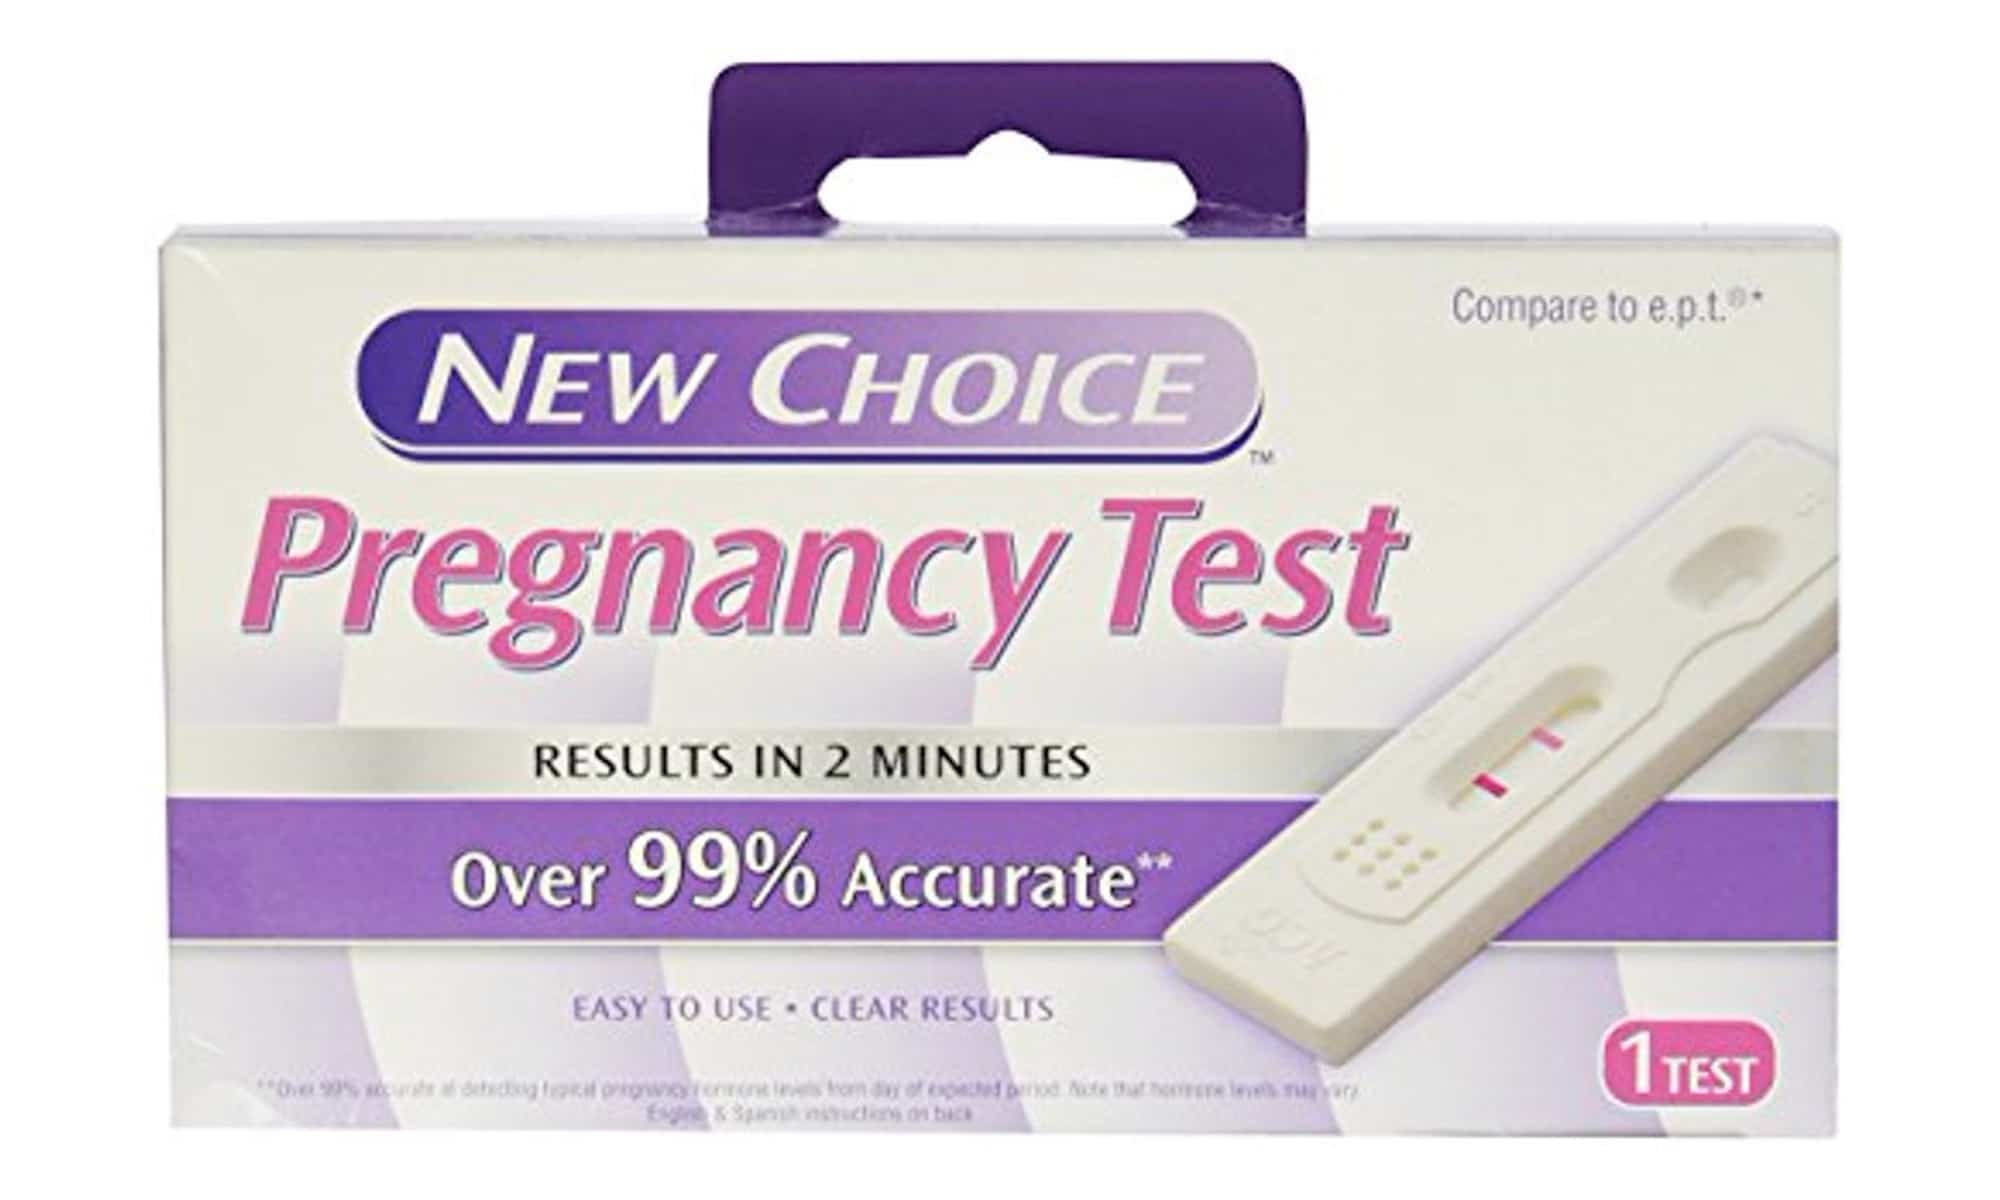 What is New Choice Pregnancy Test accuracy?